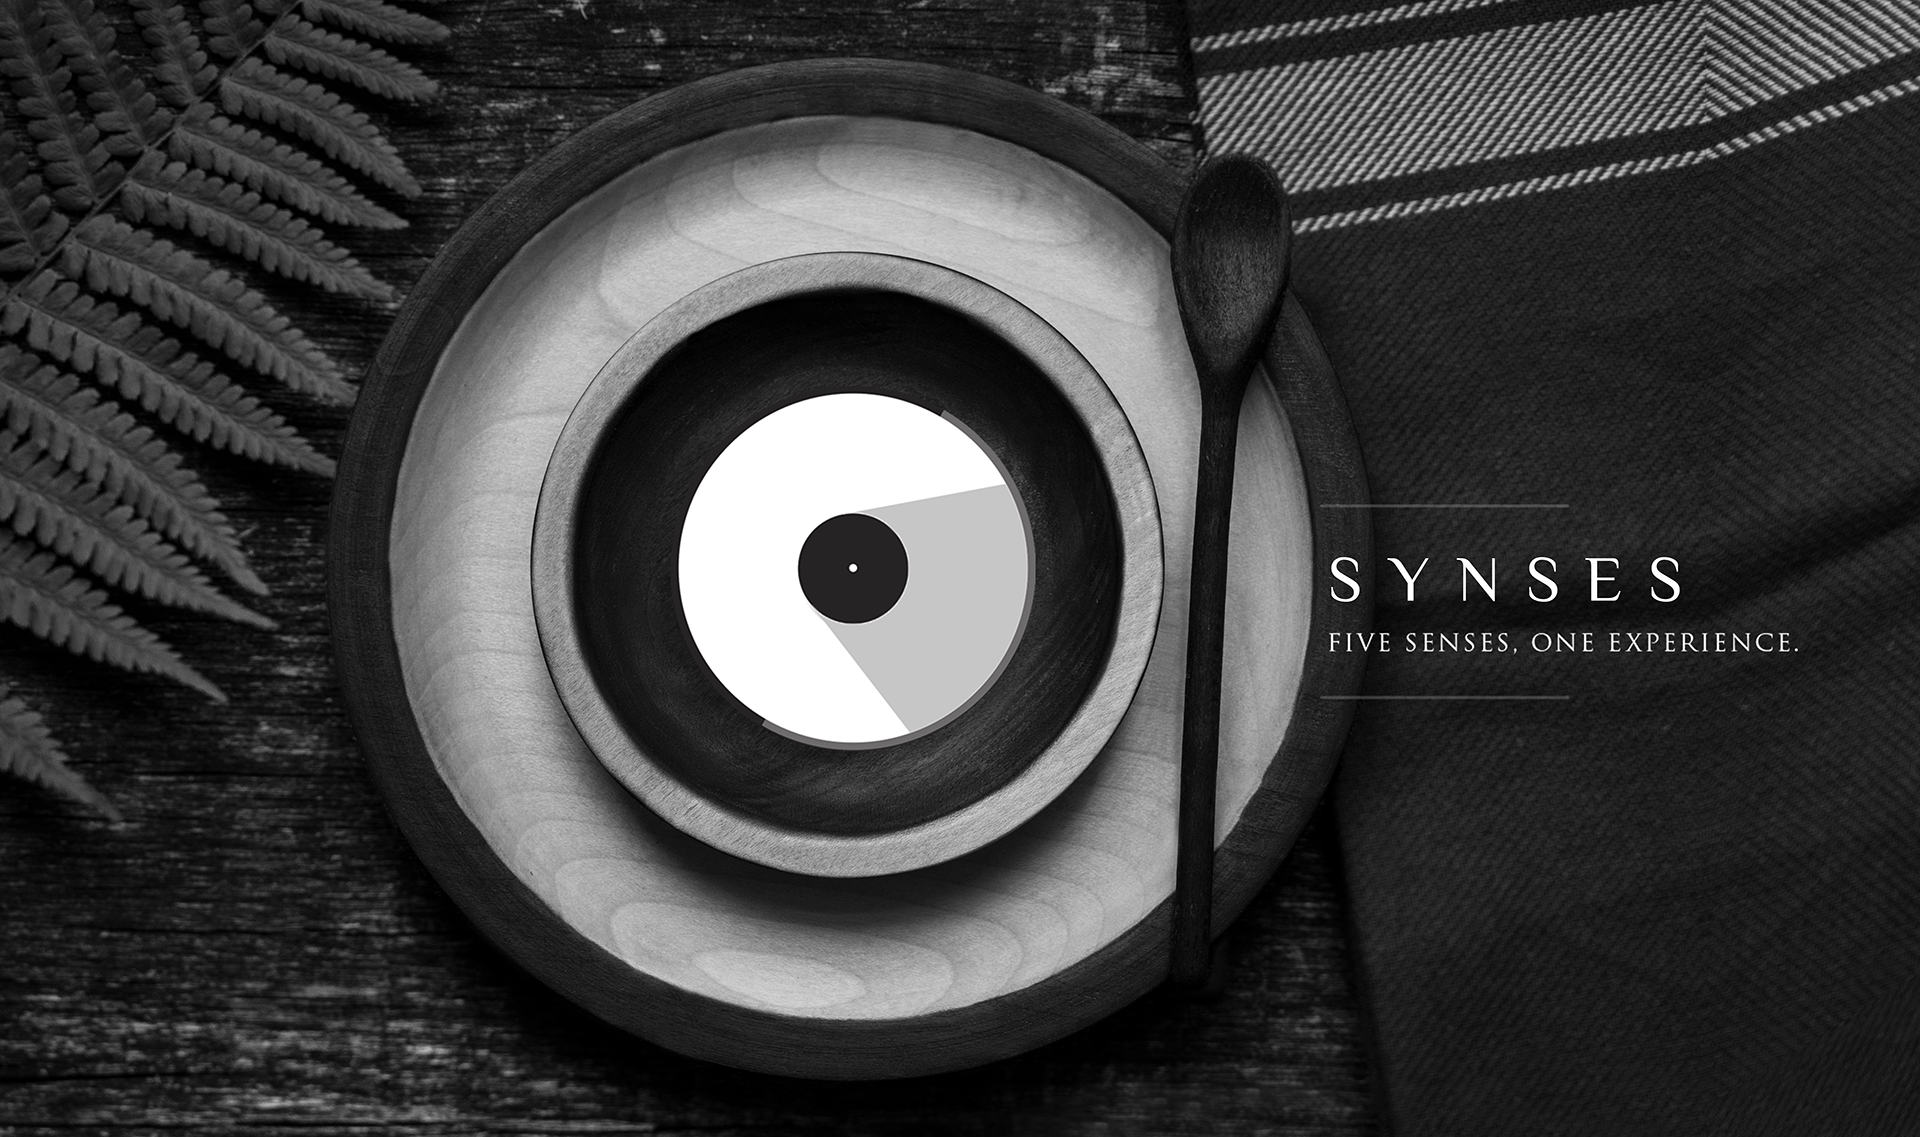 The logo is inspired by record disks and plates. With the circle also being a symbol of original perfection and infinity.